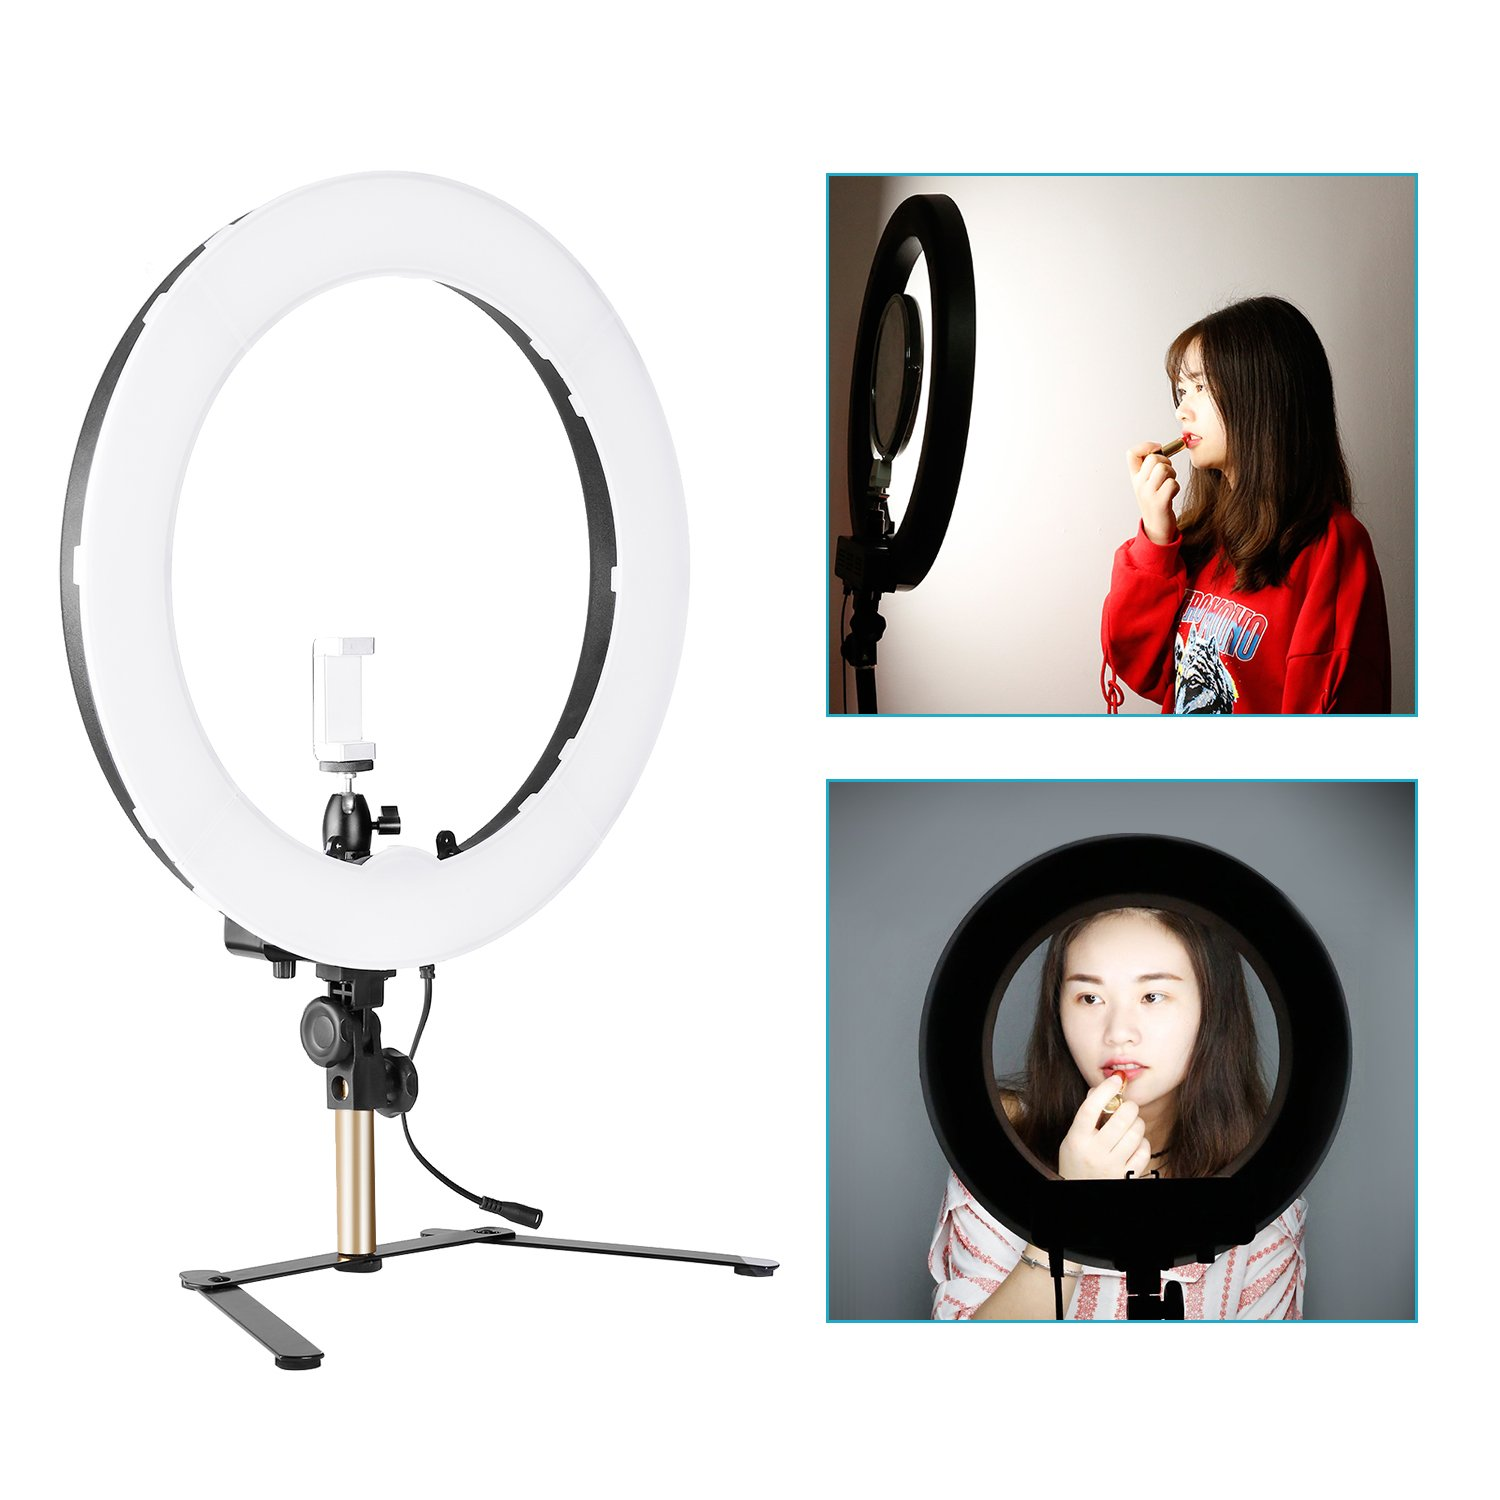 Neewer 18-inch Outer Dimmable Tabletop Ring Light Kit for Photo Studio Portrait Video Shooting, Includes: 5500K SMD LED Dimmable Ring Video Light, Support Bracket, Ball Head, Phone Holder (US/EU Plug) by Neewer (Image #3)